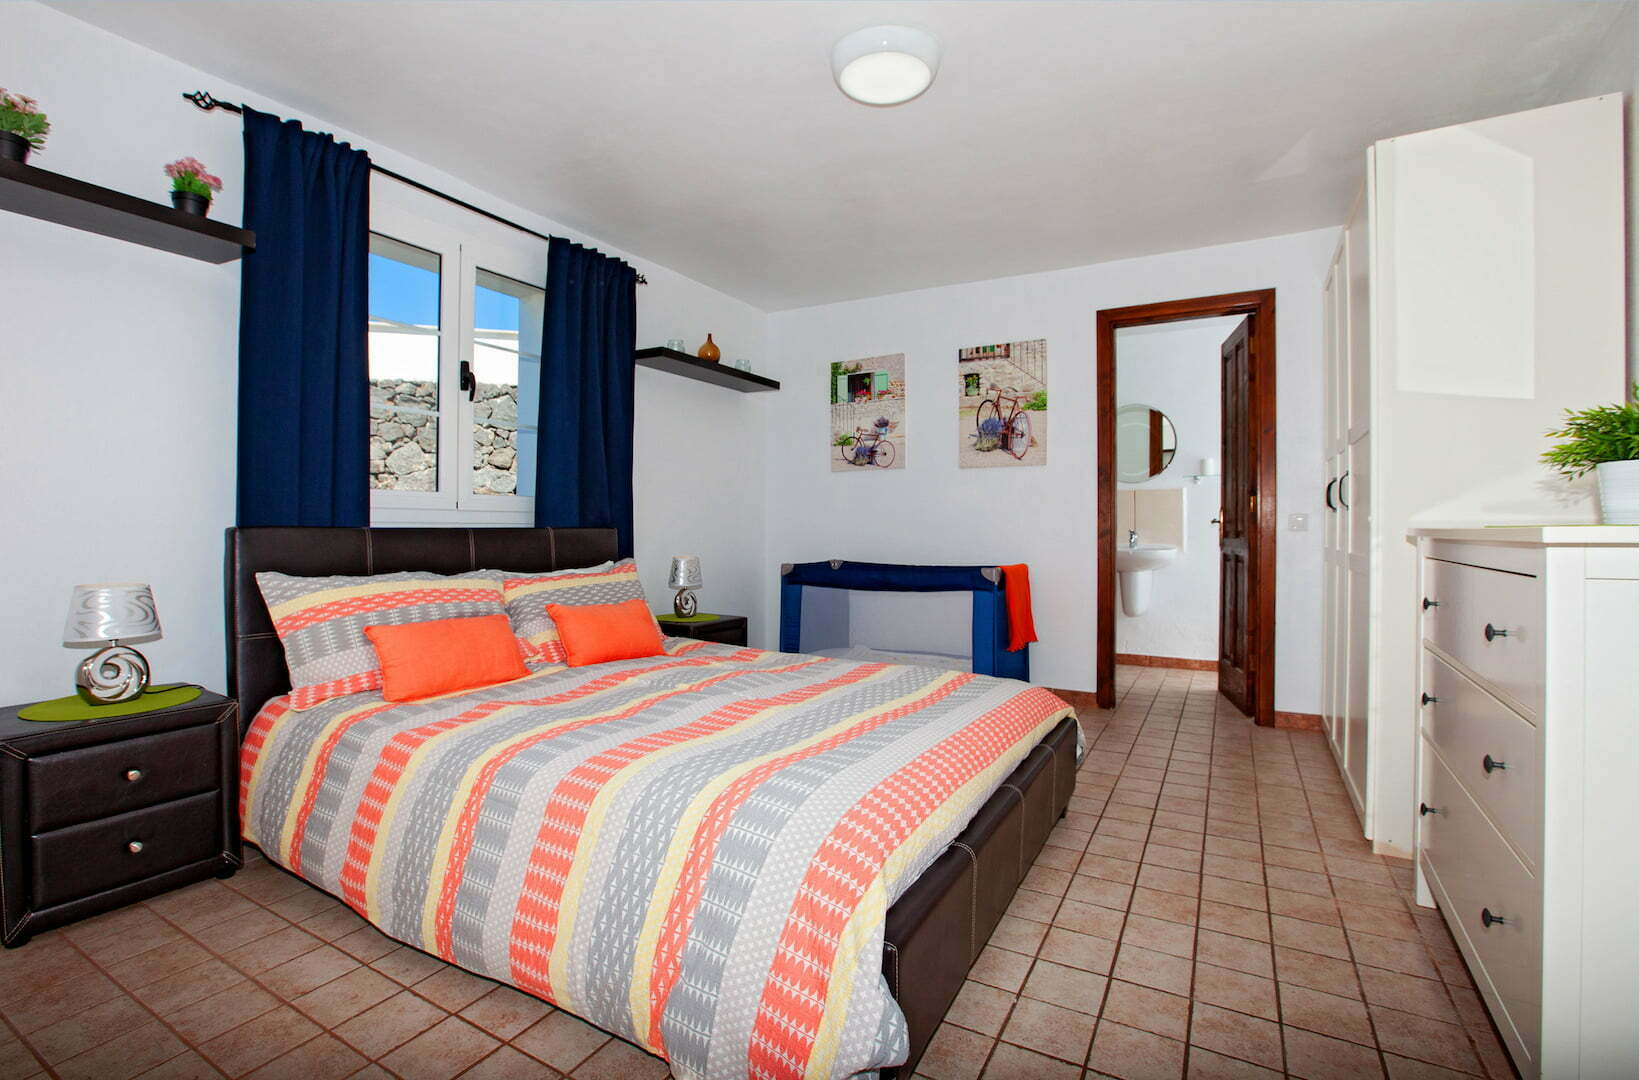 Paraiso - Macher - King Sized Bedroom with Large Double Bed